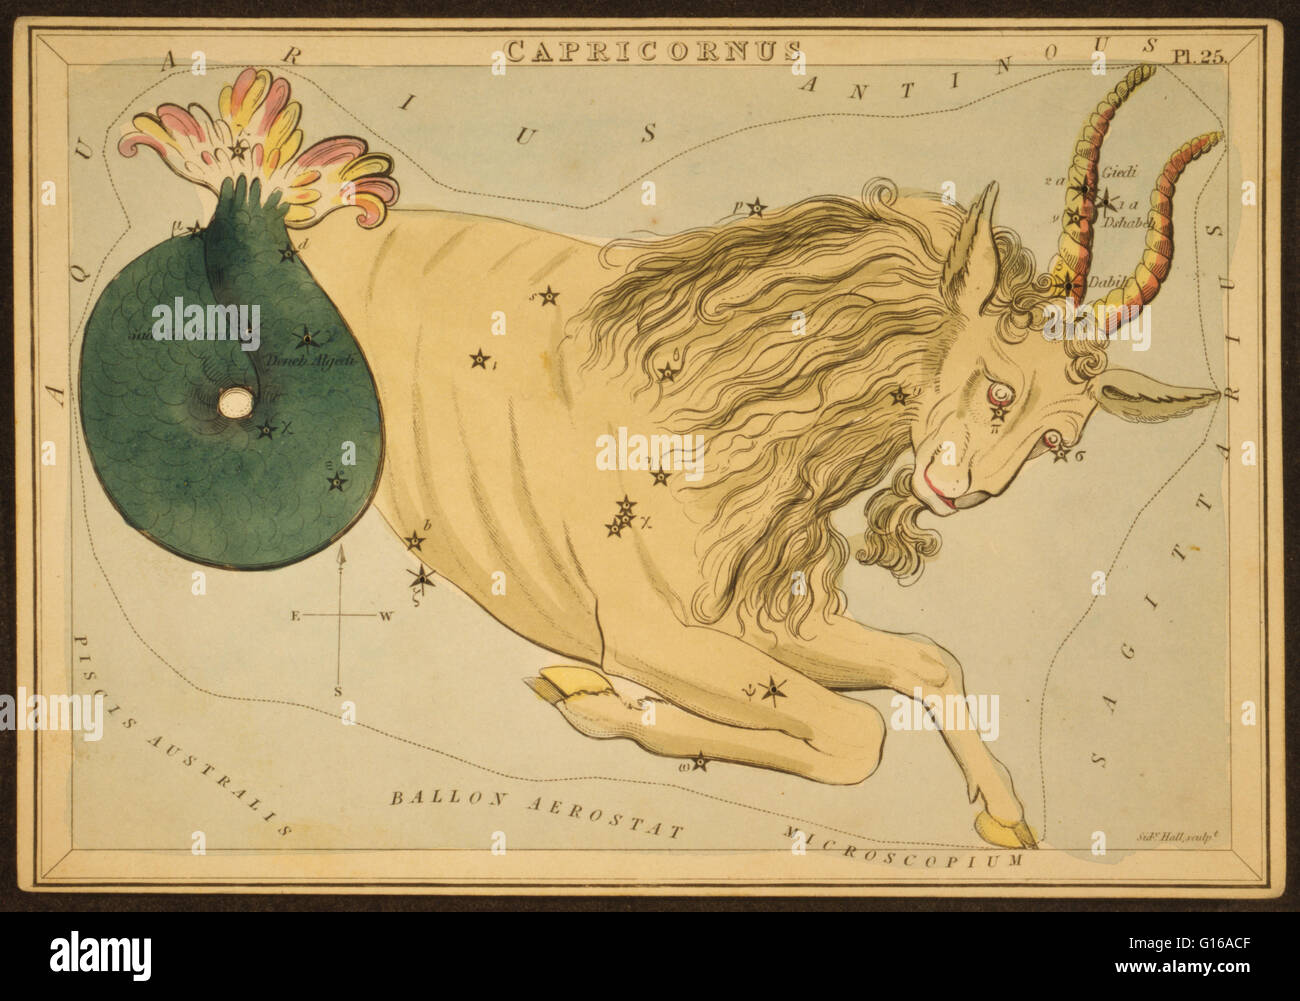 Astronomical chart showing a goat forming the constellation. Capricornus is one of the constellations of the zodiac, - Stock Image